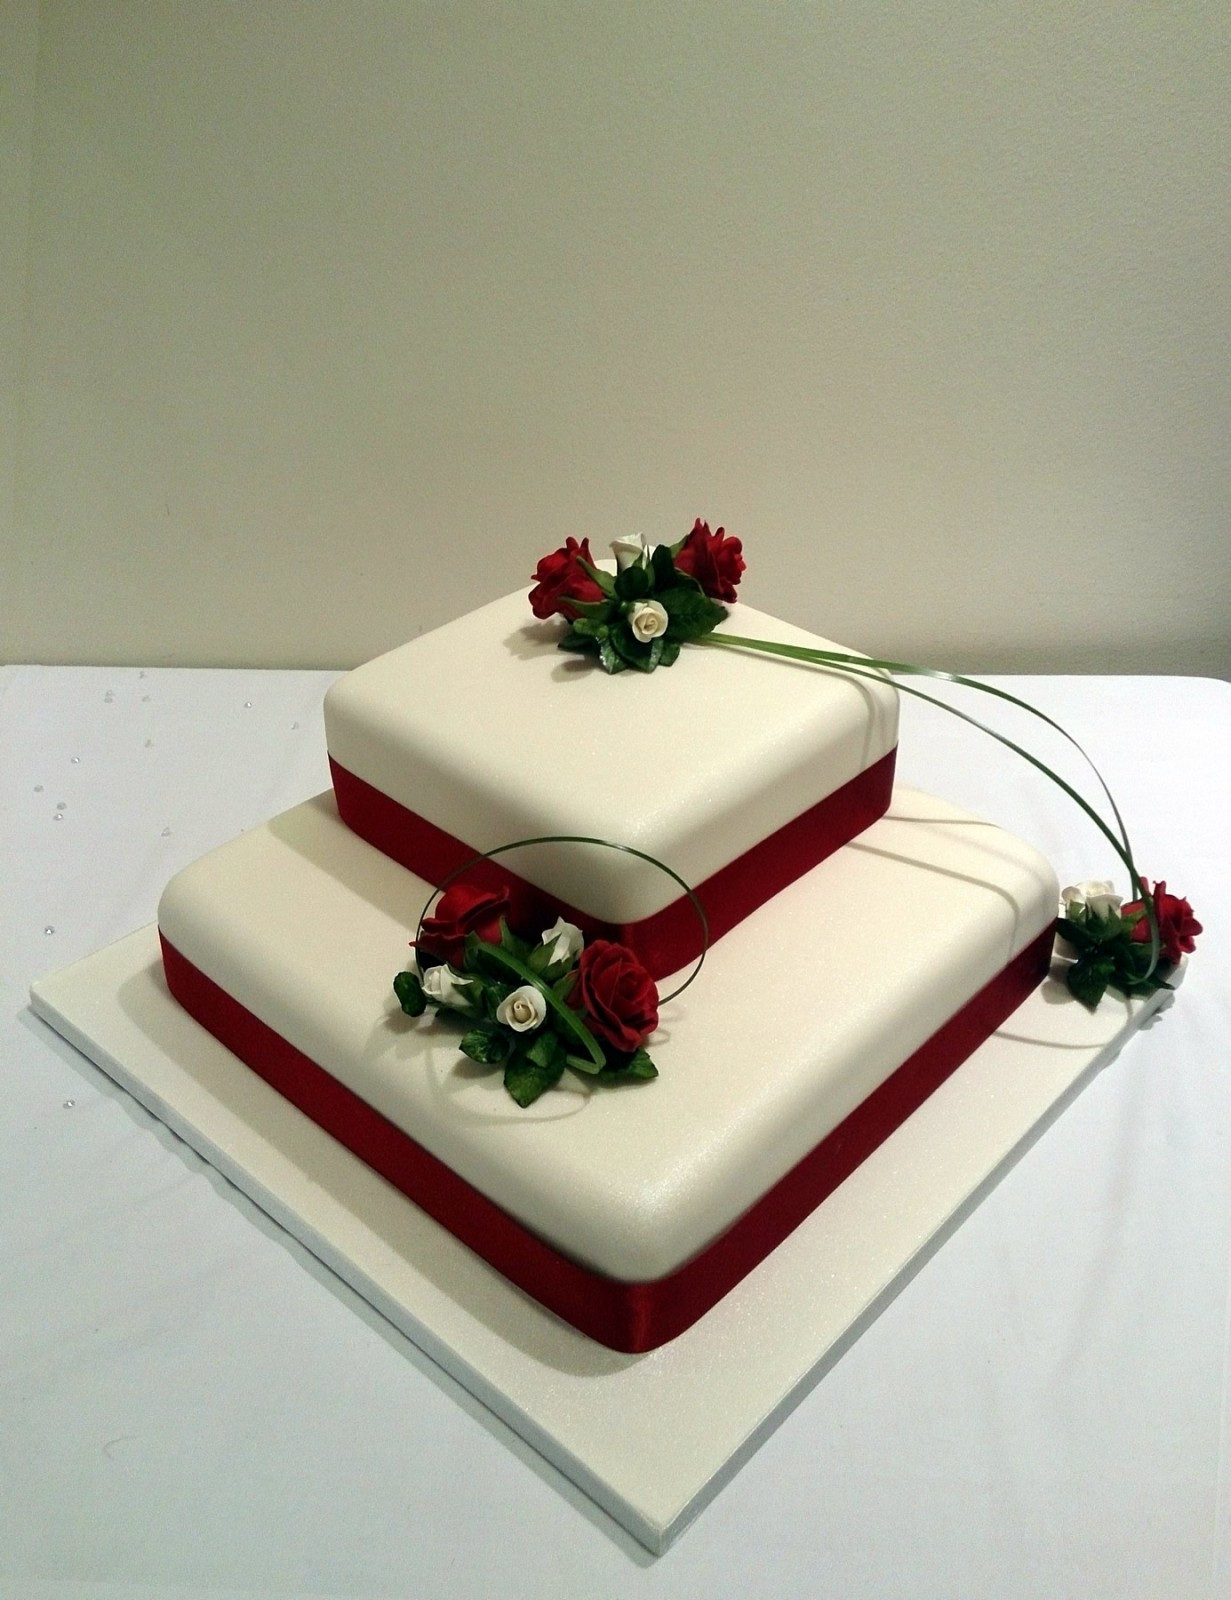 Square Tiered Wedding Cakes  2 Tier Square Stacked Wedding Cake With Deep Red Rose